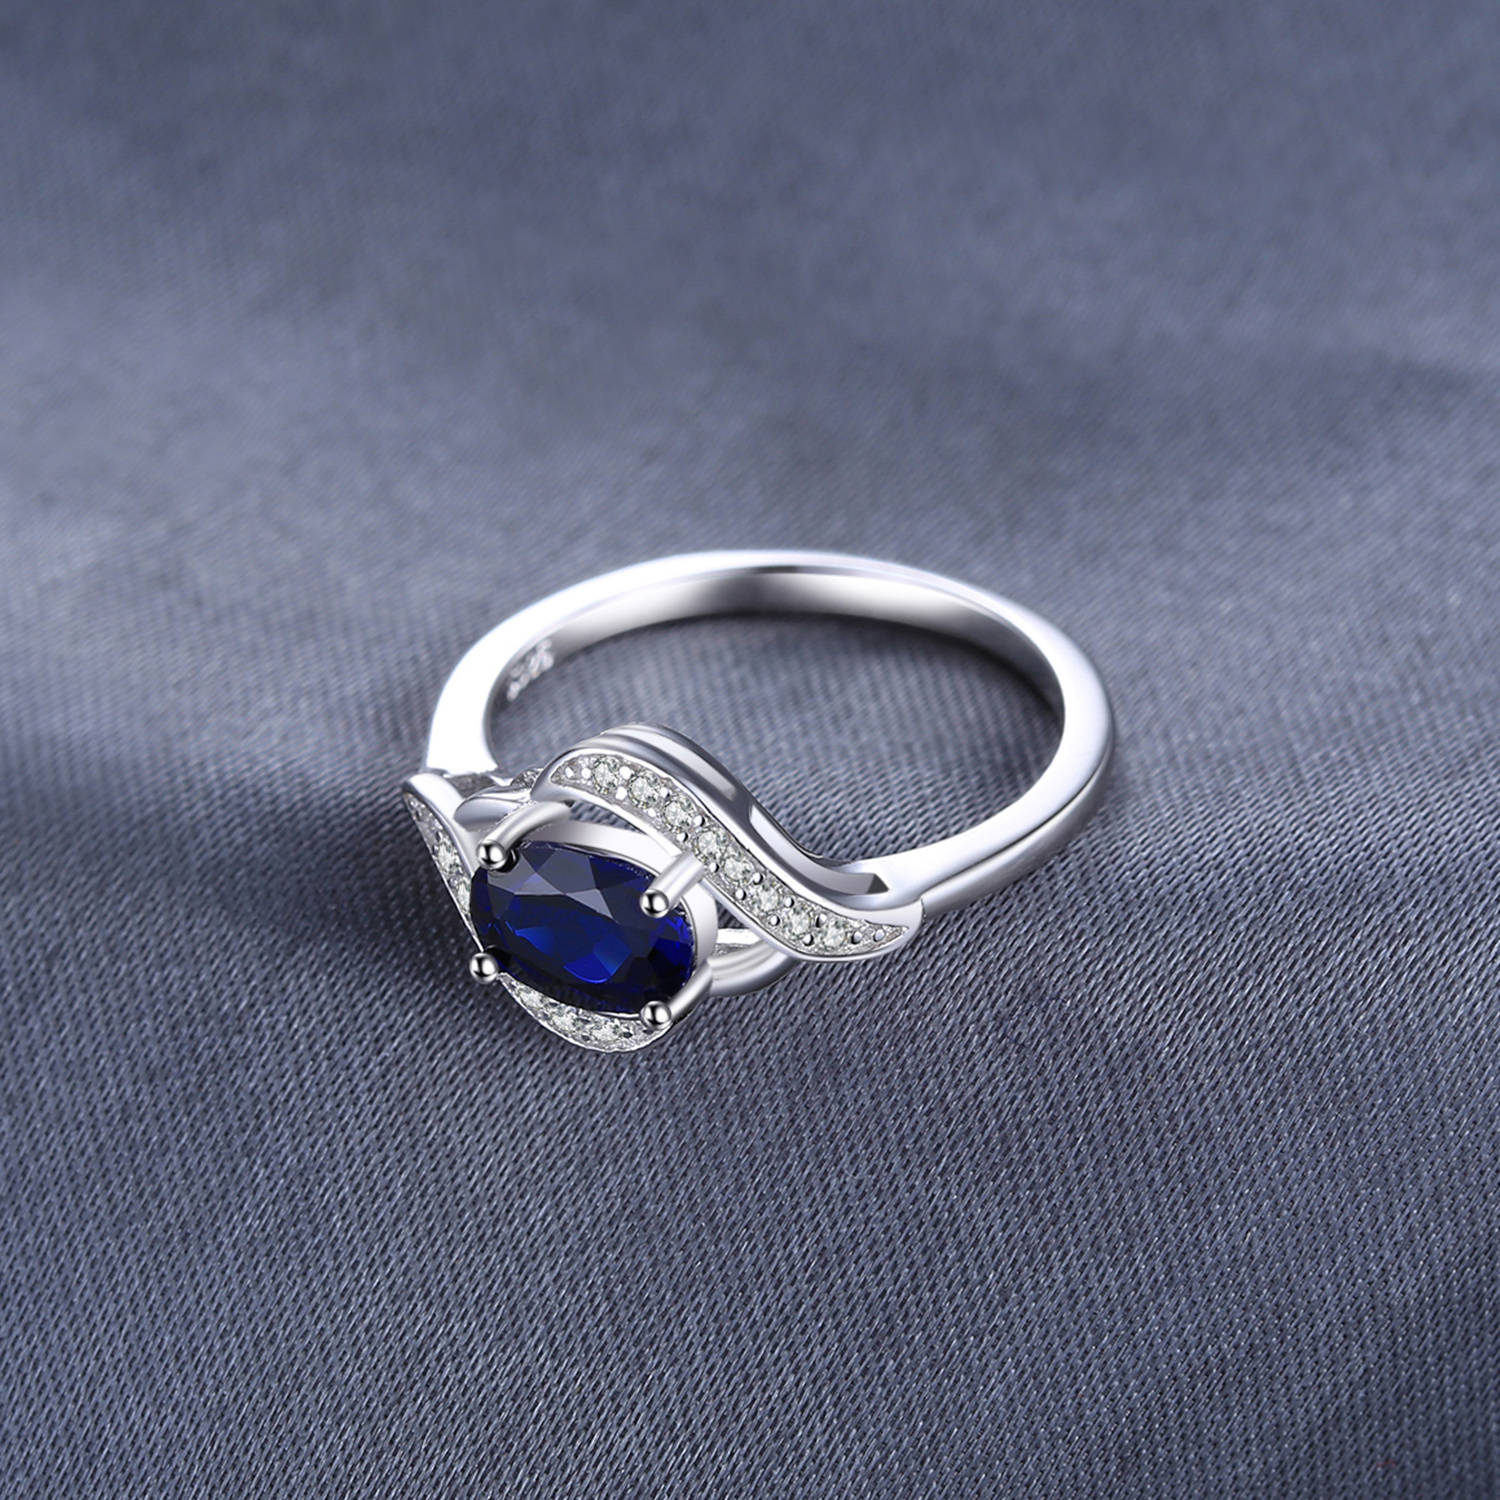 Jewelrypalace Created Blue Sapphire Ring 925 Sterling Silver Rings for Women Halo Engagement Ring Silver 925 Jewelrypalace Created Blue Sapphire Ring 925 Sterling Silver Rings for Women Halo Engagement Ring Silver 925 Gemstone Jewelry